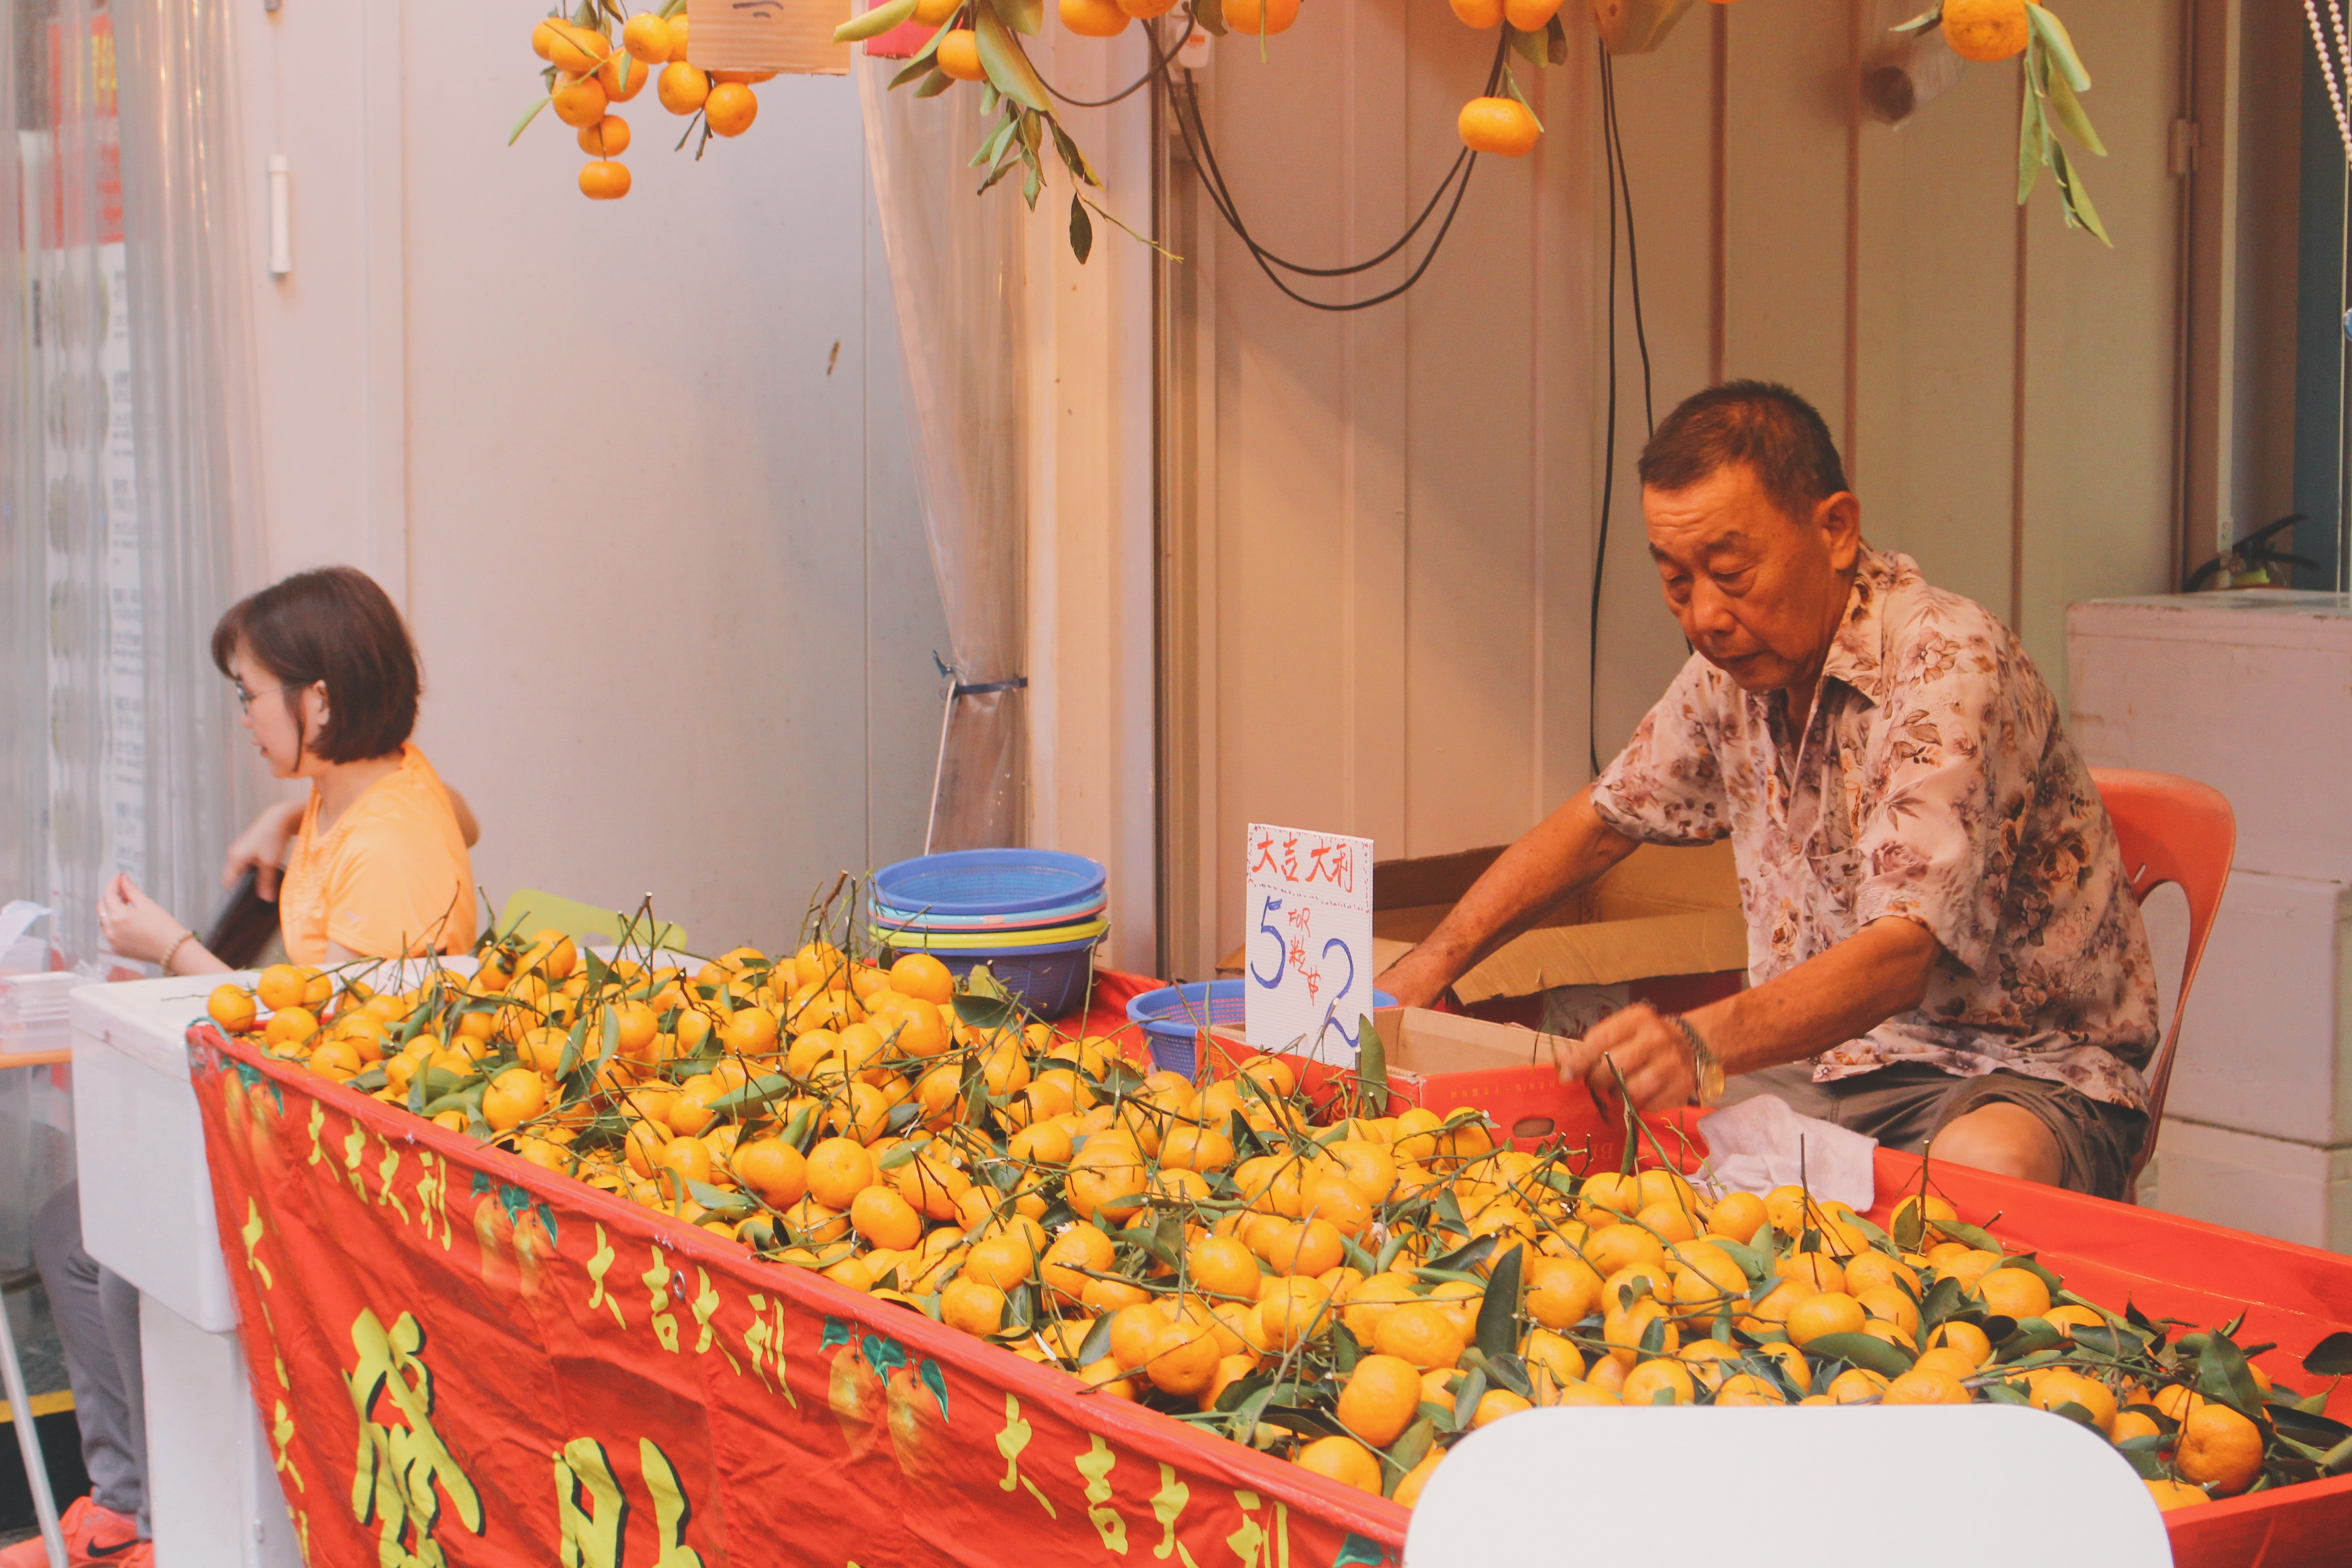 Mandarin oranges are a must have as they are said to bring riches into your life. Photo: Connected to India